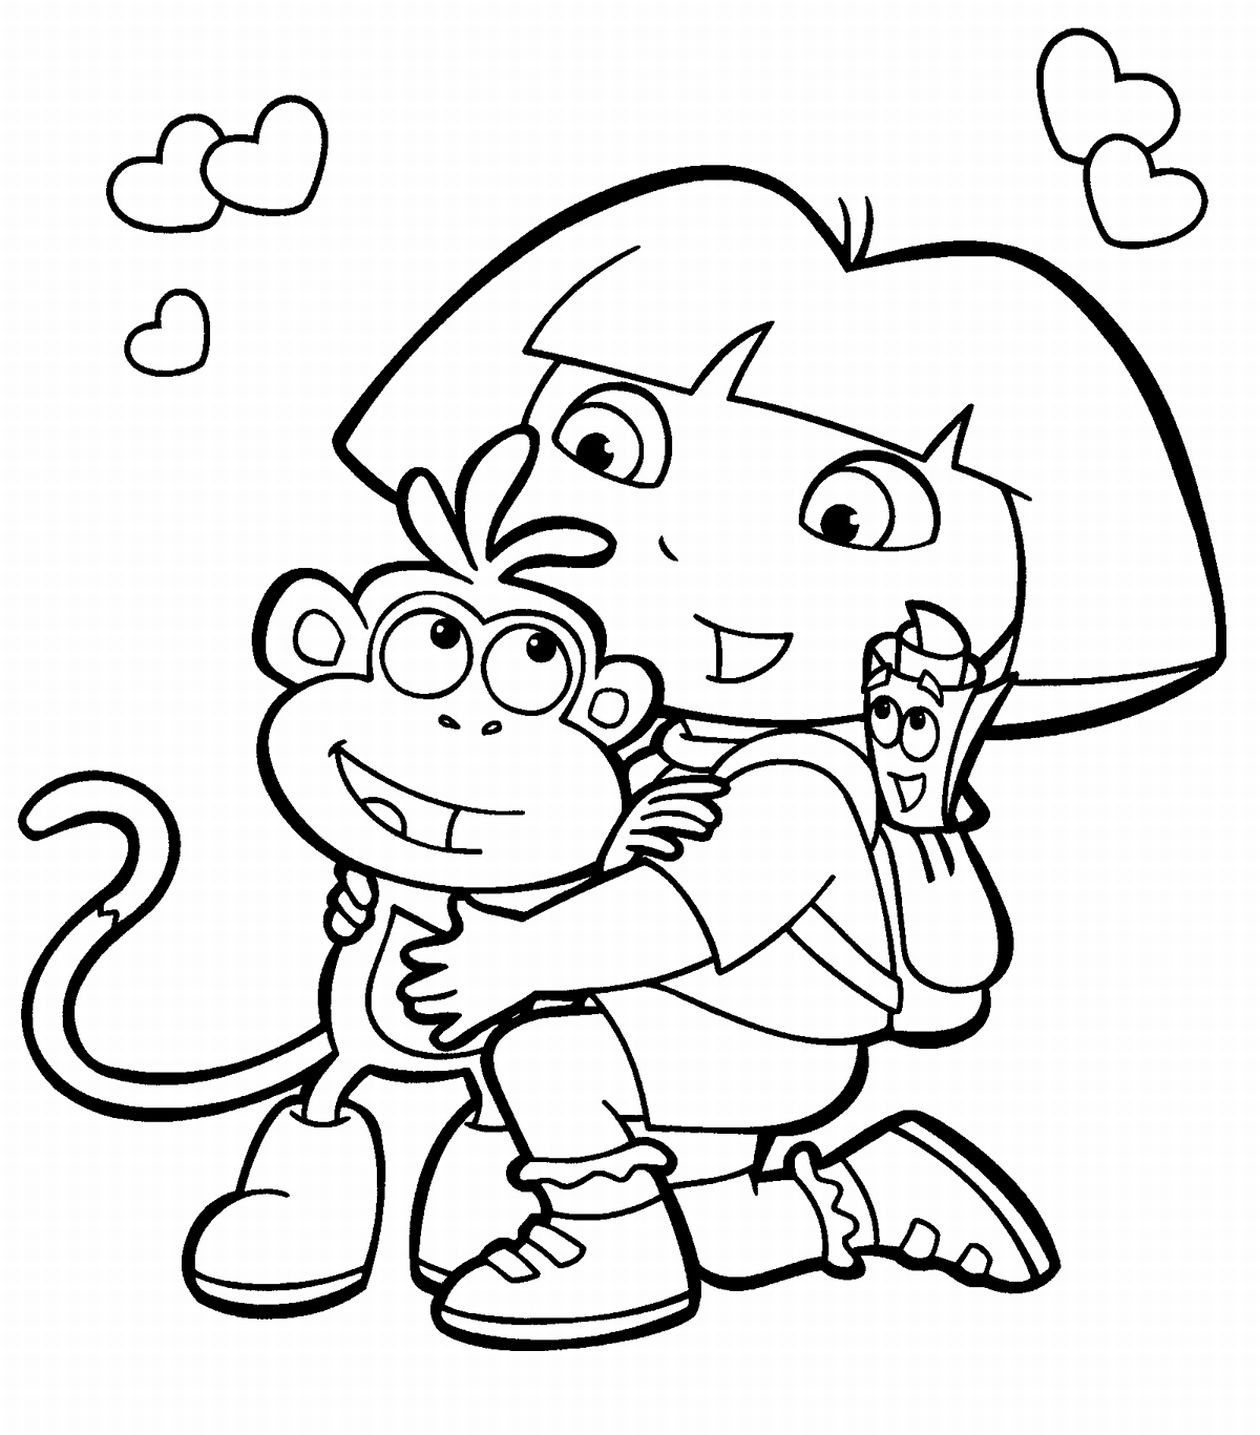 D3937c79944bbbf486c7671d41a36a75 free kids printable coloring pages freecoloringpage info on free printable coloring pages kindergarten